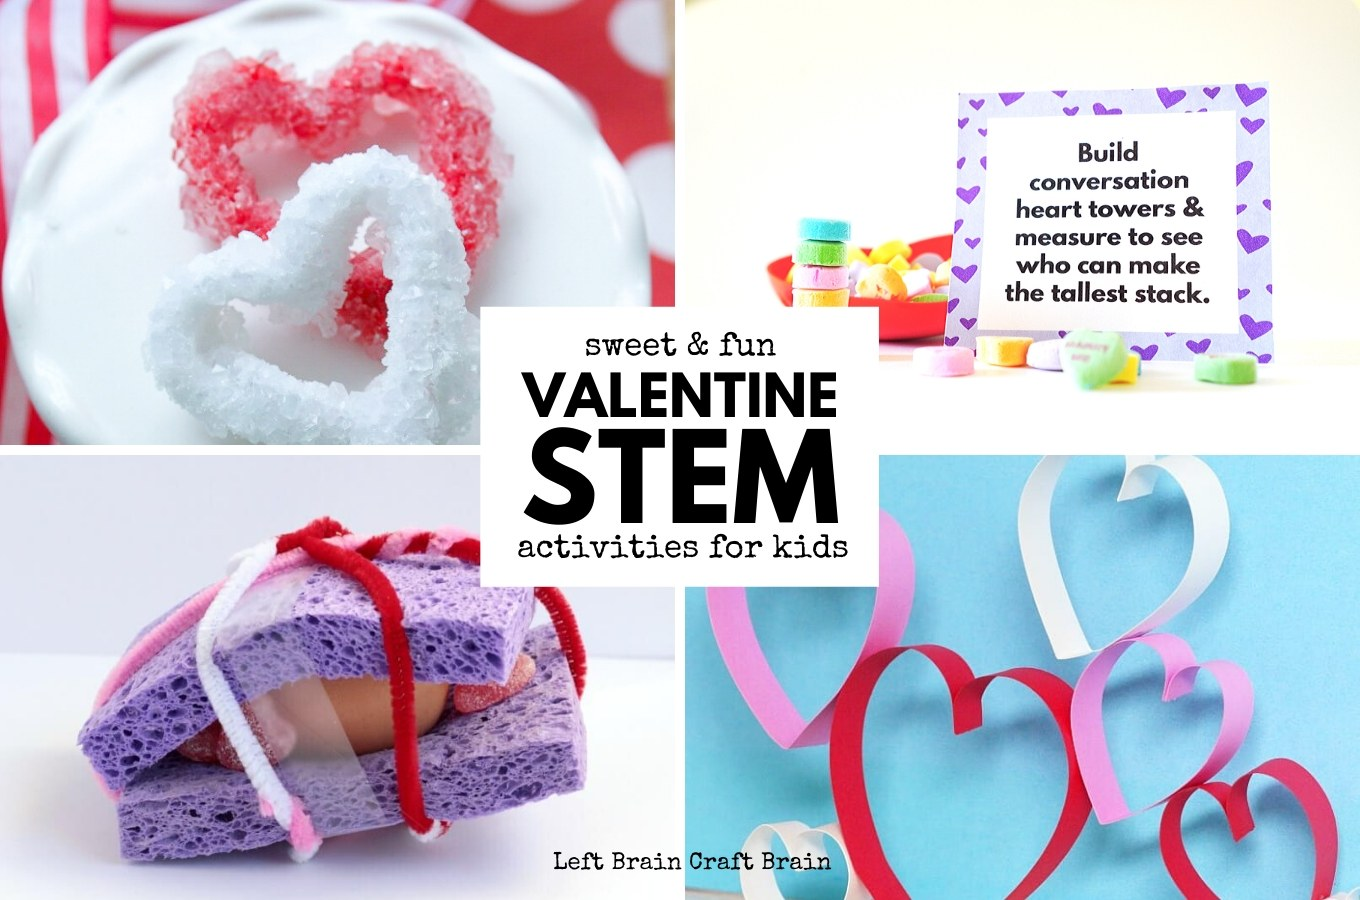 Valentine S Day Stem Activities And Stem Projects For Kids Left Brain Craft Brain